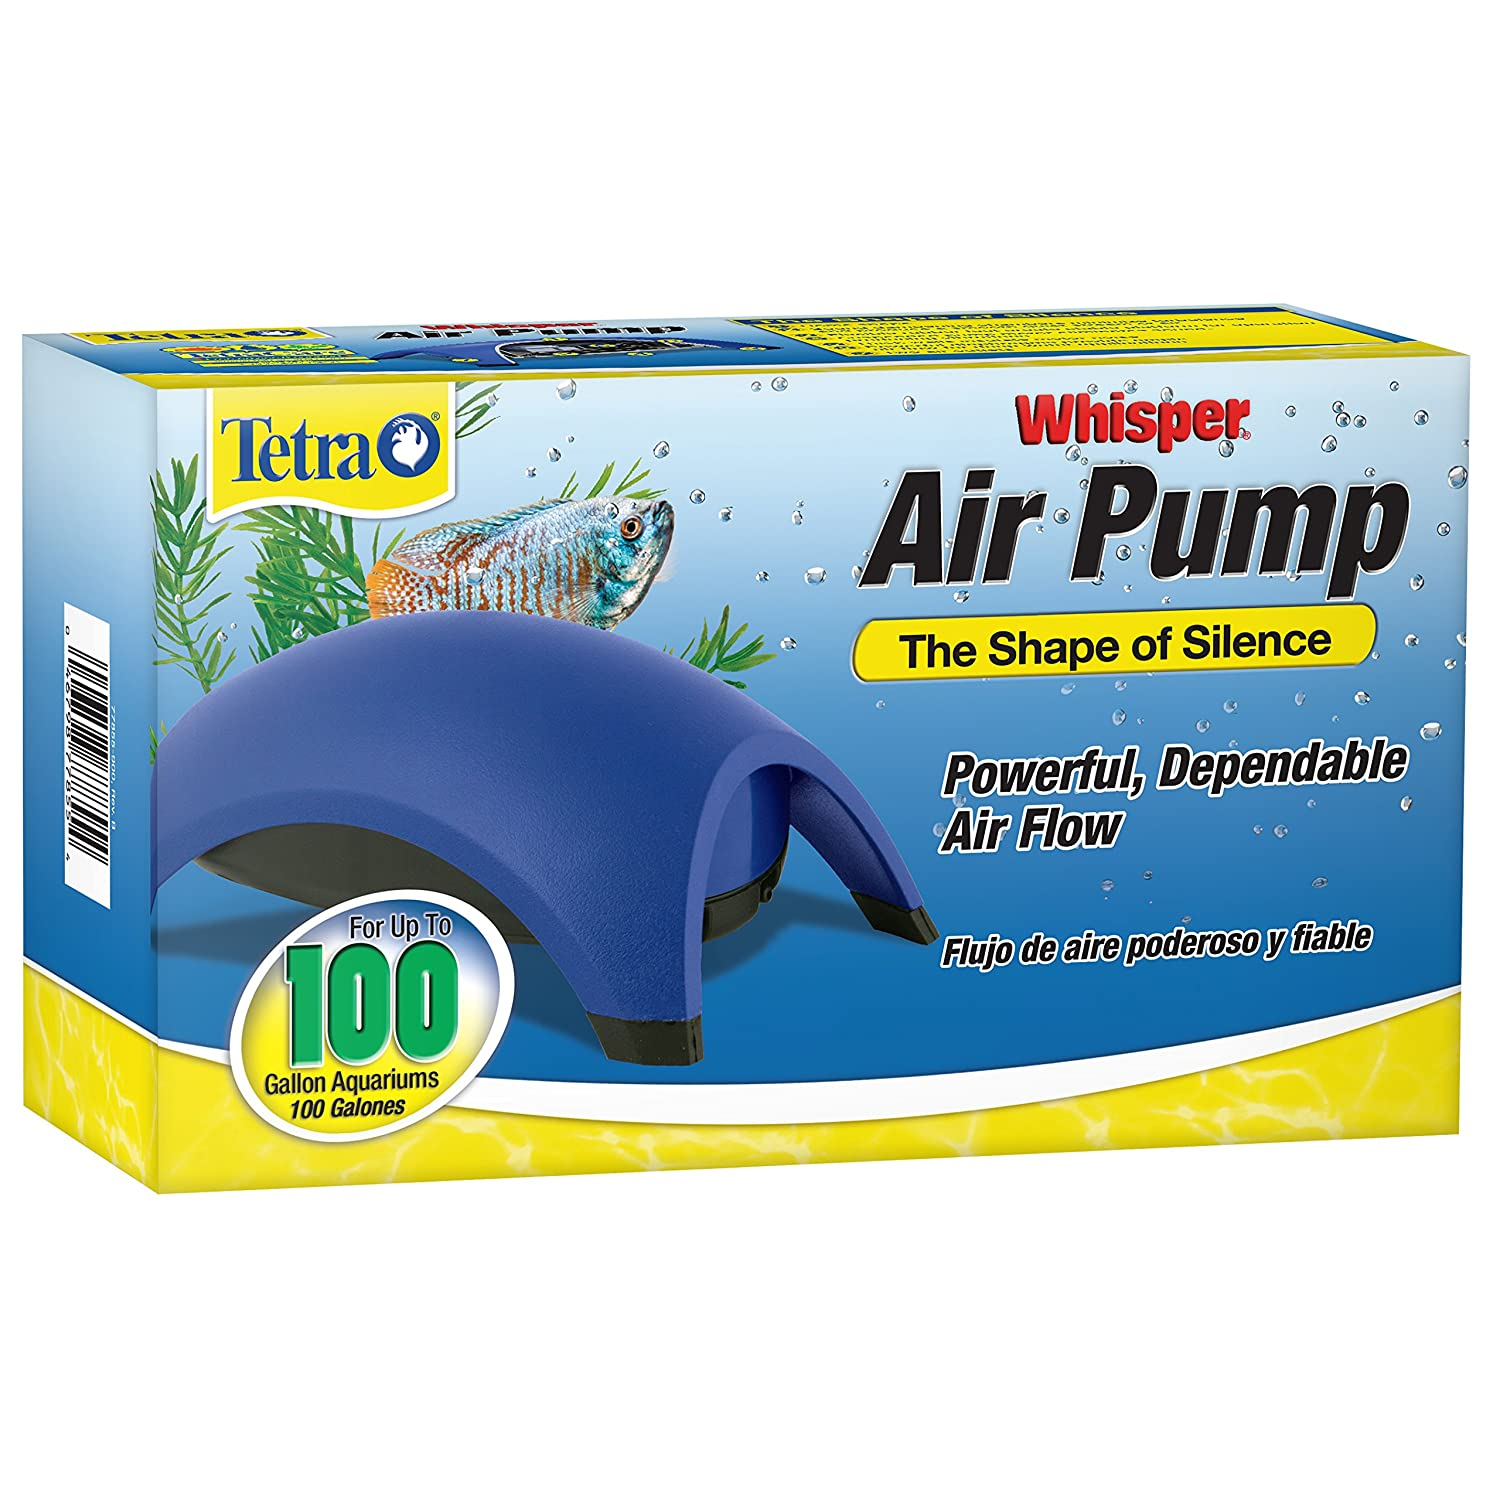 919Nc0VheXL._SL1500_ amazon com tetra 77855 whisper air pump, 100 gallon aquarium  at creativeand.co